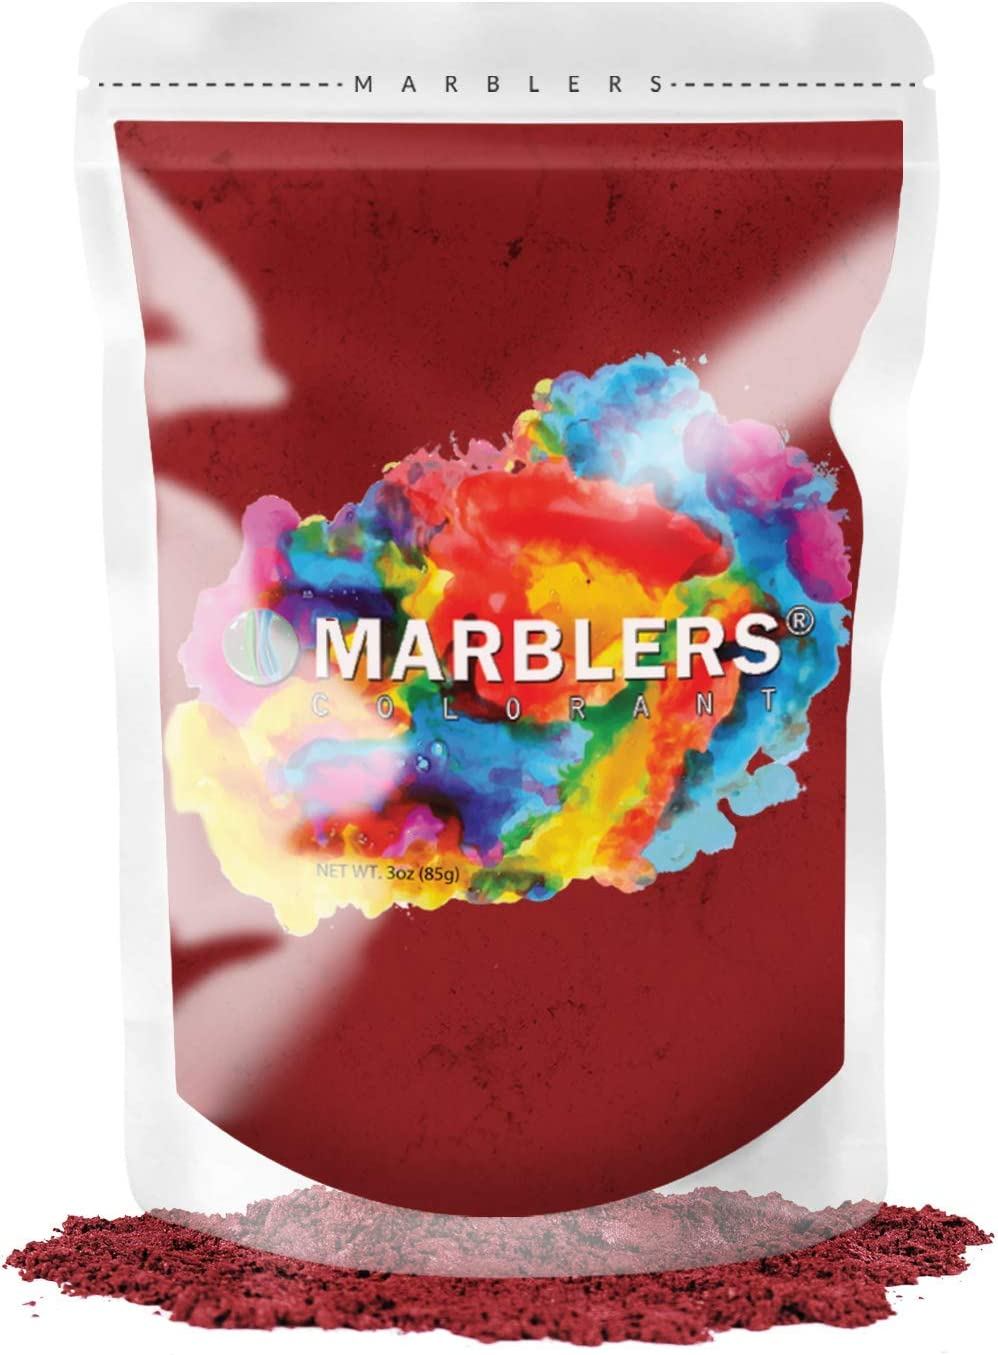 MARBLERS Mica Powder Colorant 3oz (85g) [Deep Red] | Pearlescent Pigment | Tint | Pure Mica Powder for Resin | Dye | Non-Toxic | Great for Epoxy, Soap, Nail Polish, Cosmetics and Bath Bombs